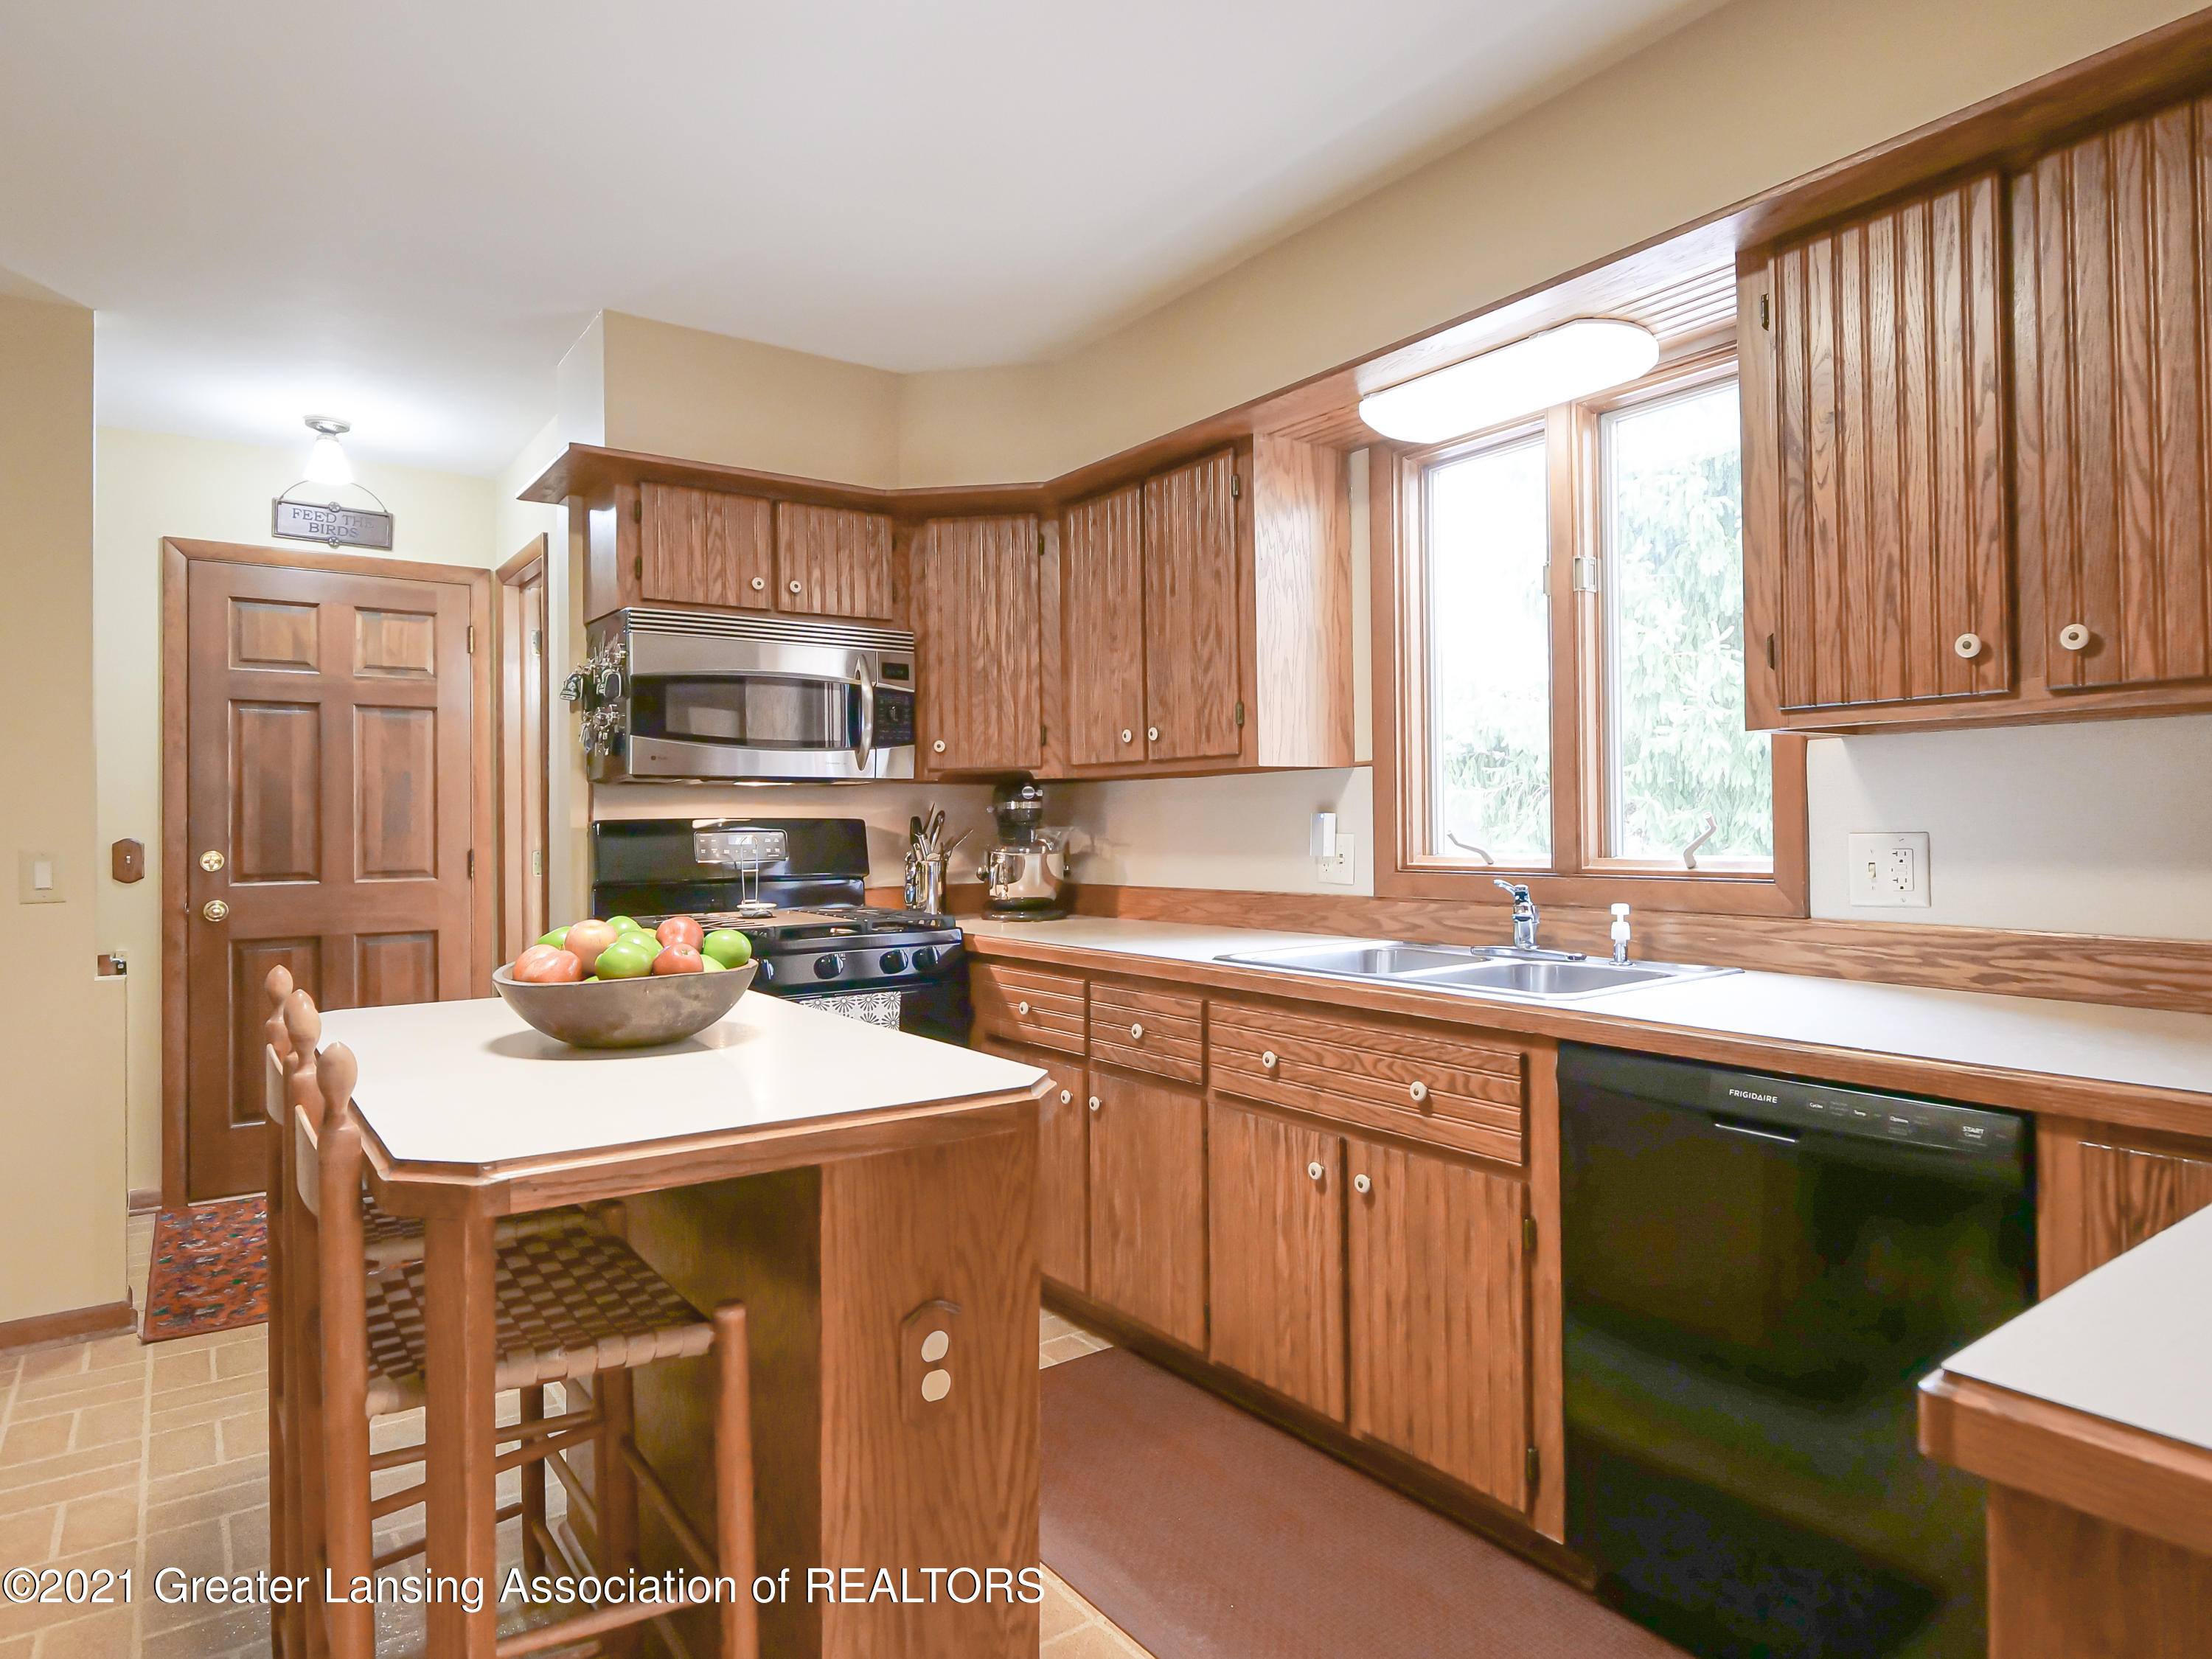 12980 Kingsgate Way - 12980_Kinsgate_Way-24 - 7